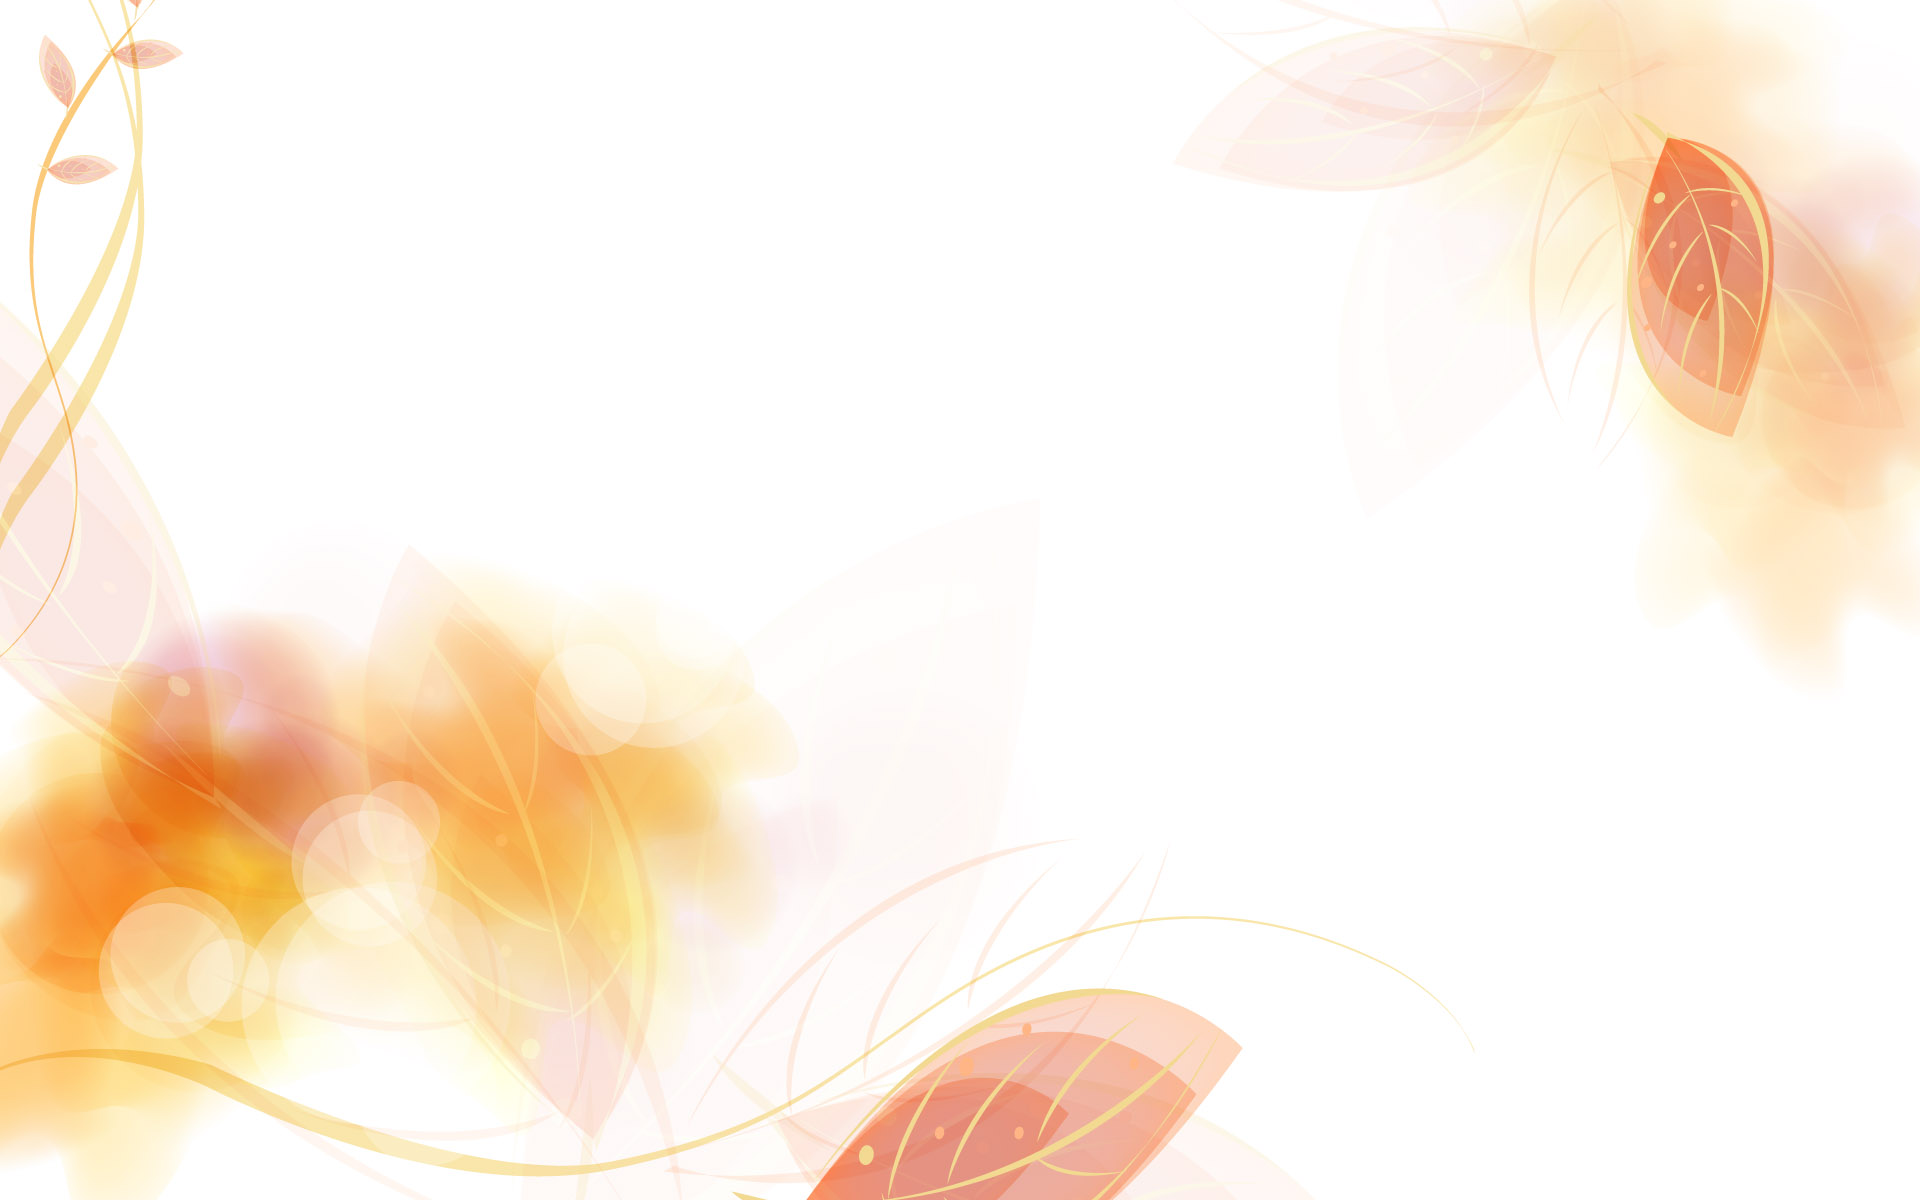 Background color 18146